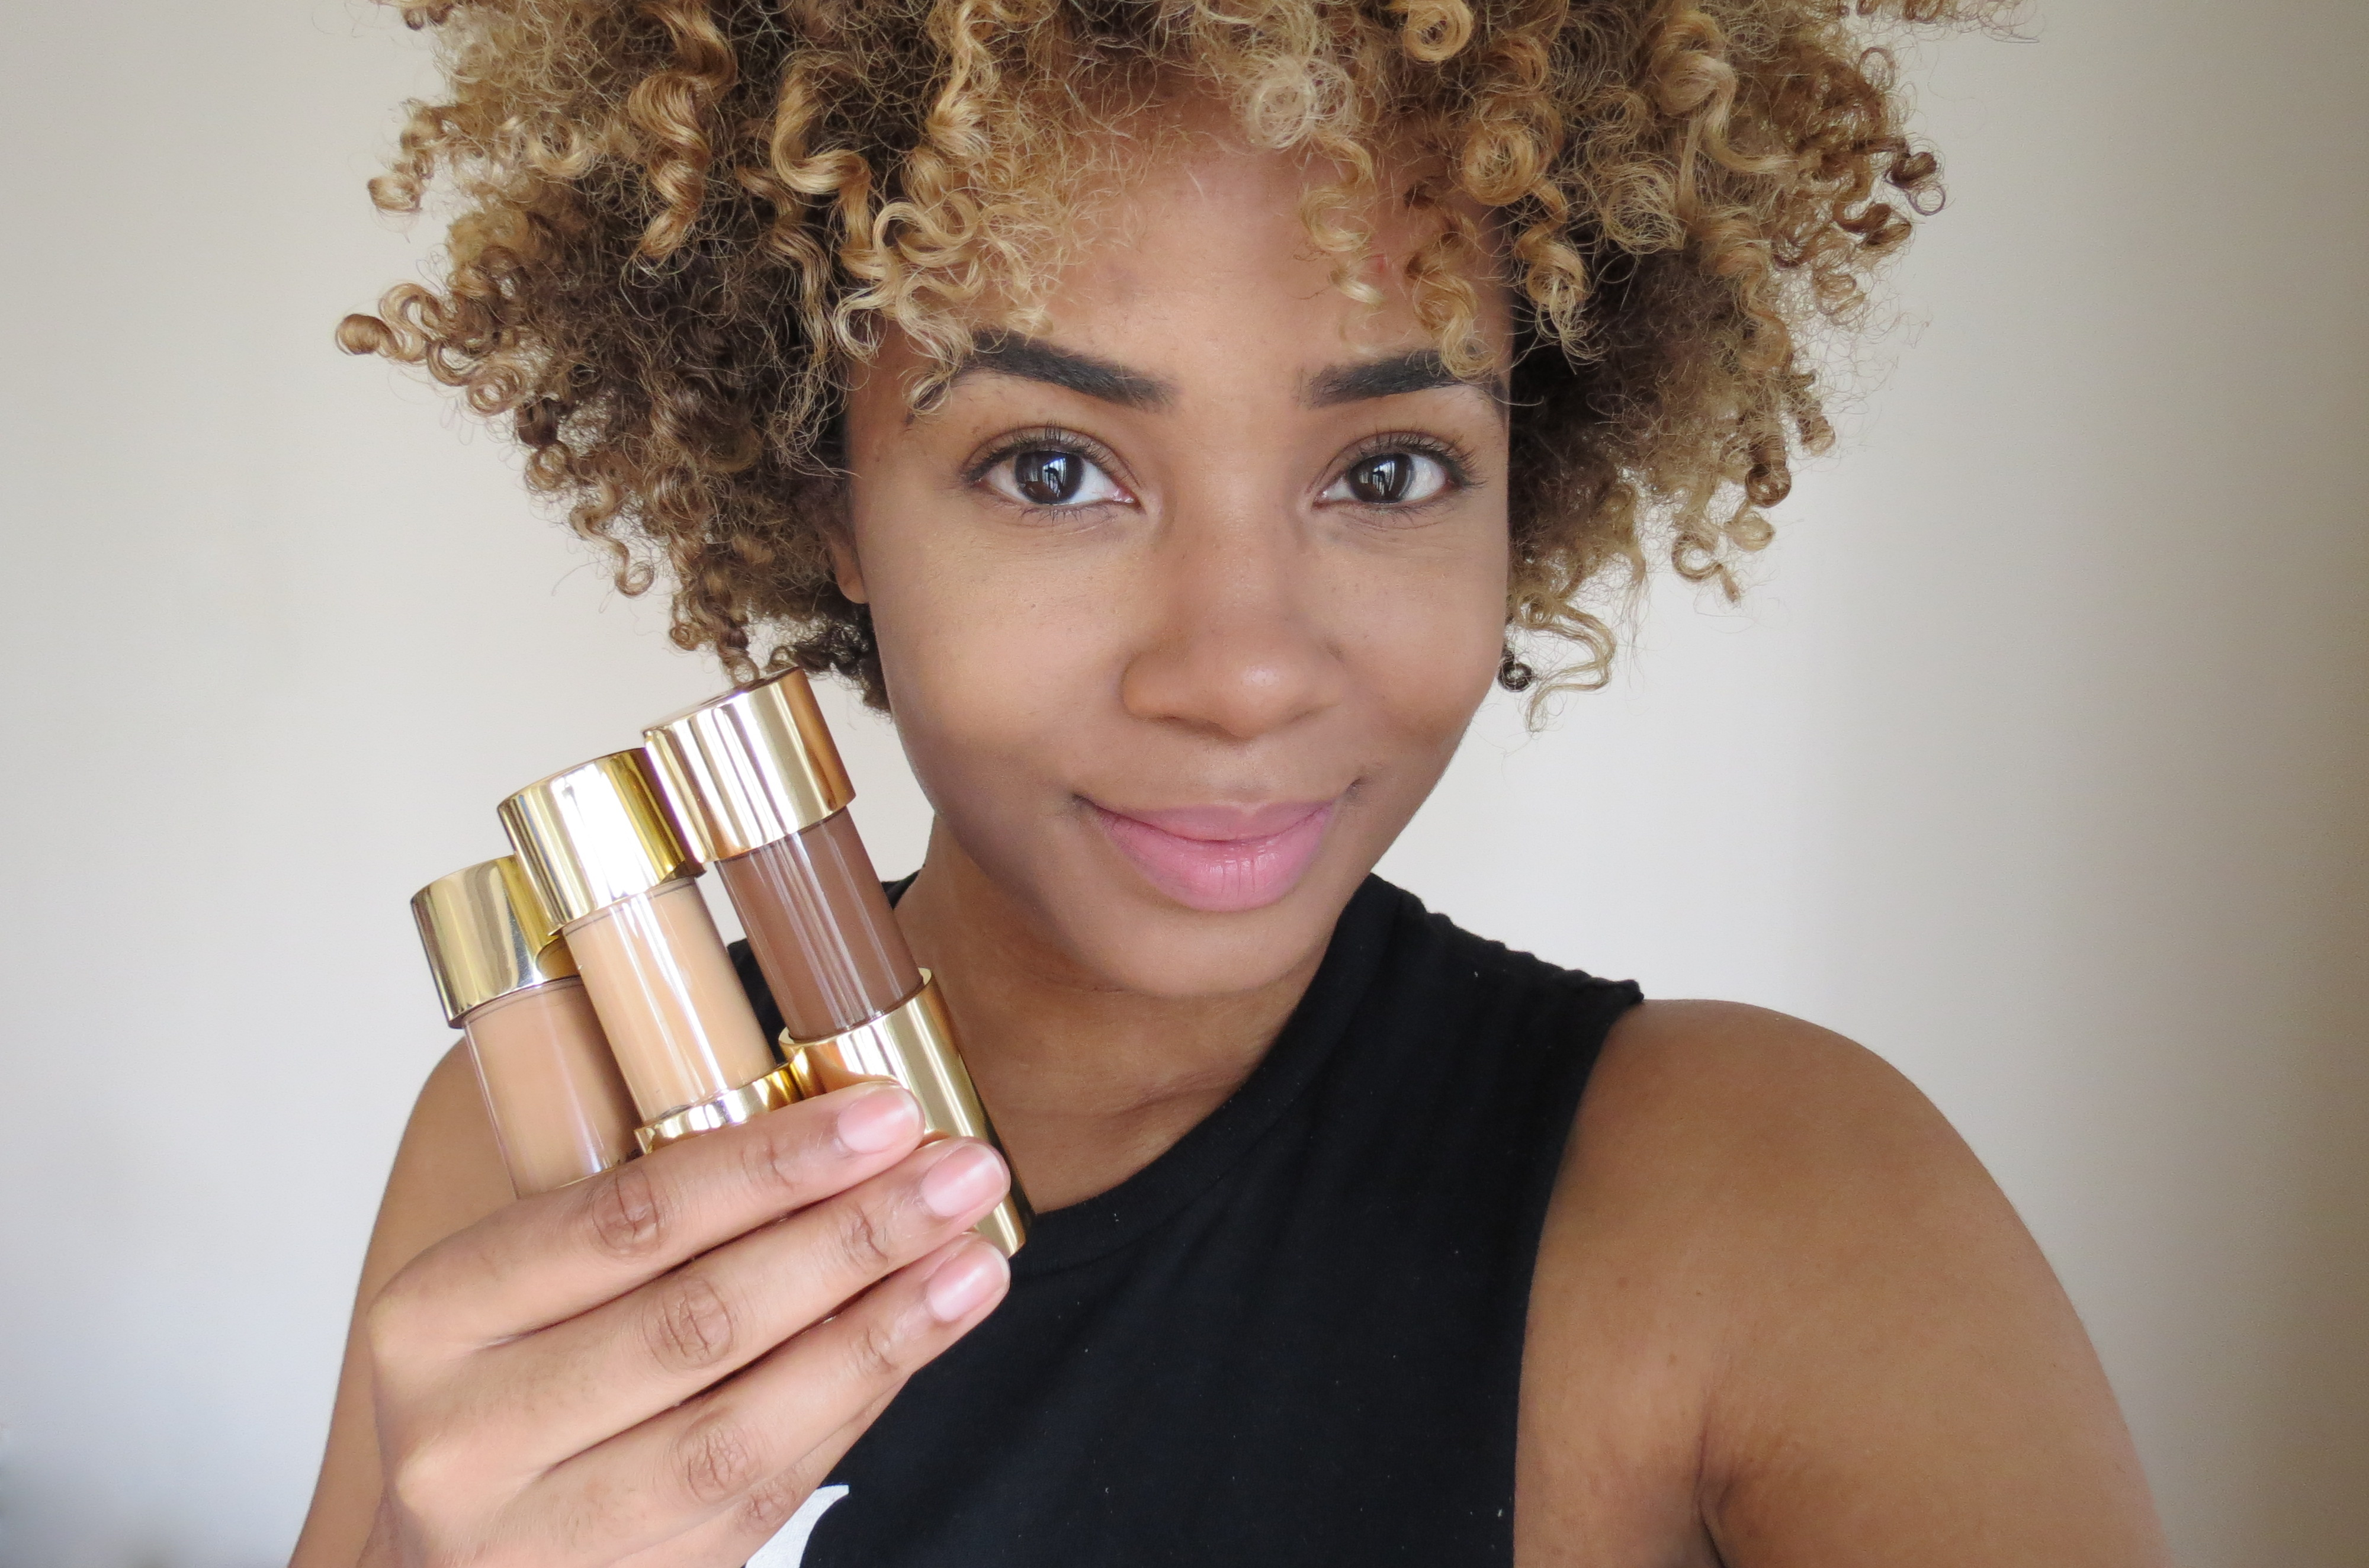 Review: Estee Lauder New Double Wear Nude Foundation